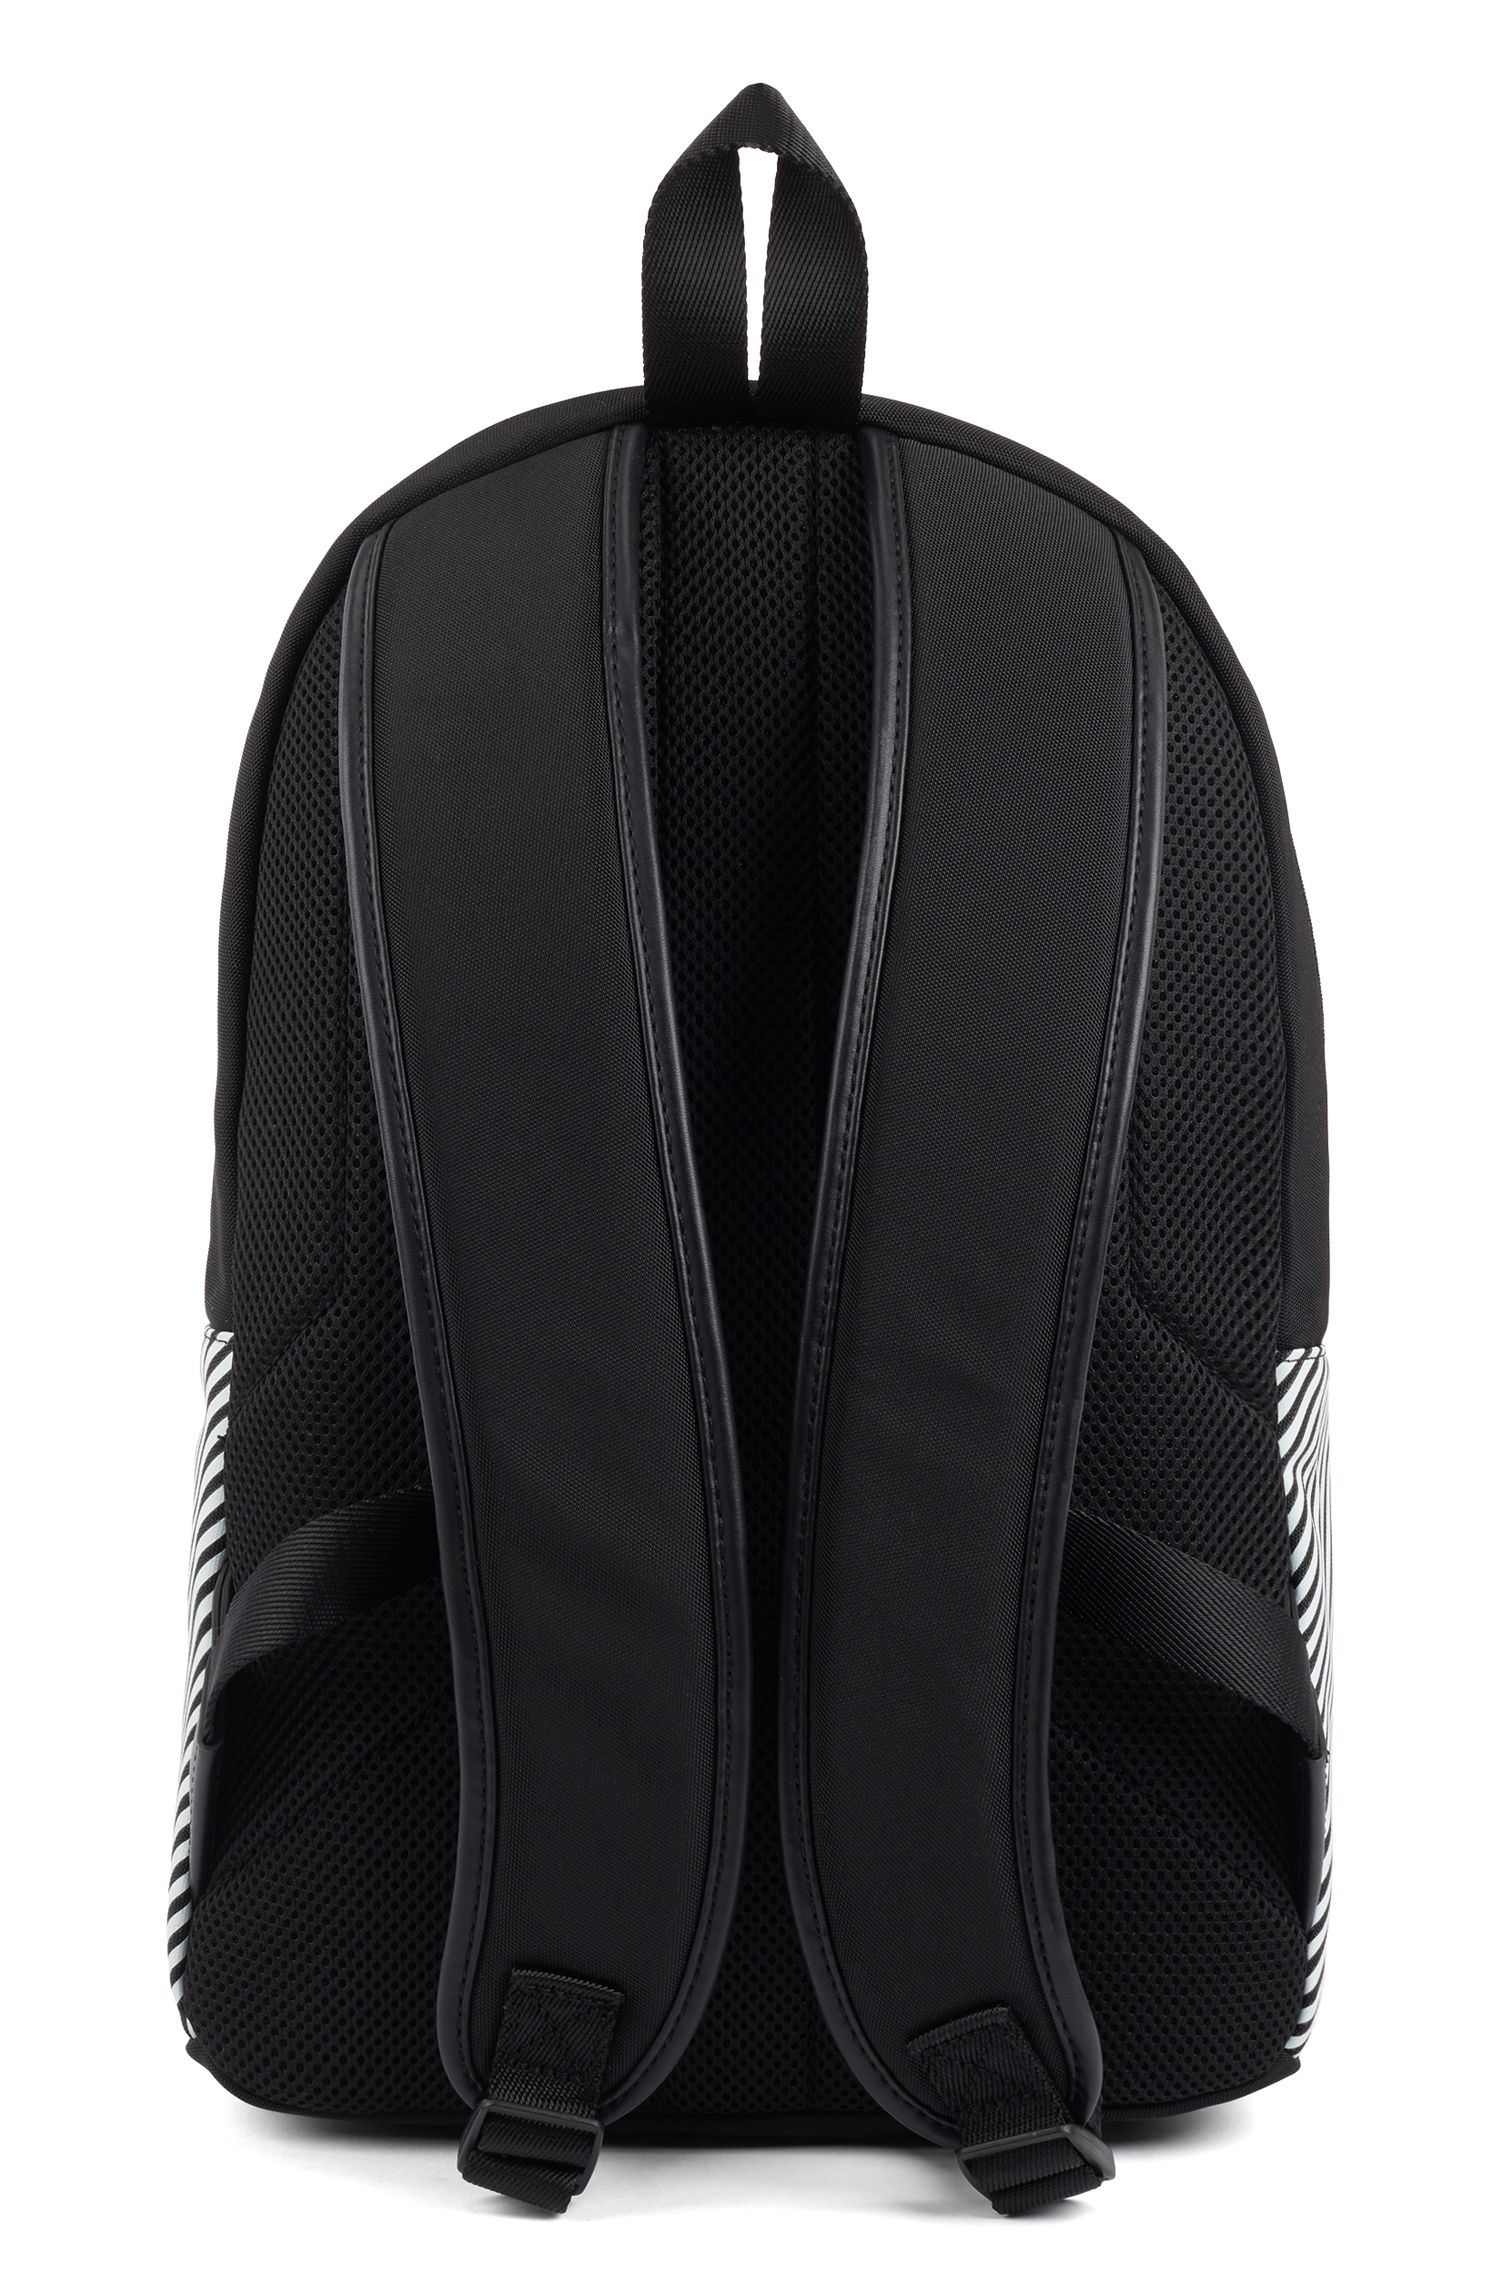 Zipped backpack in structured nylon with printed stripes, Patterned